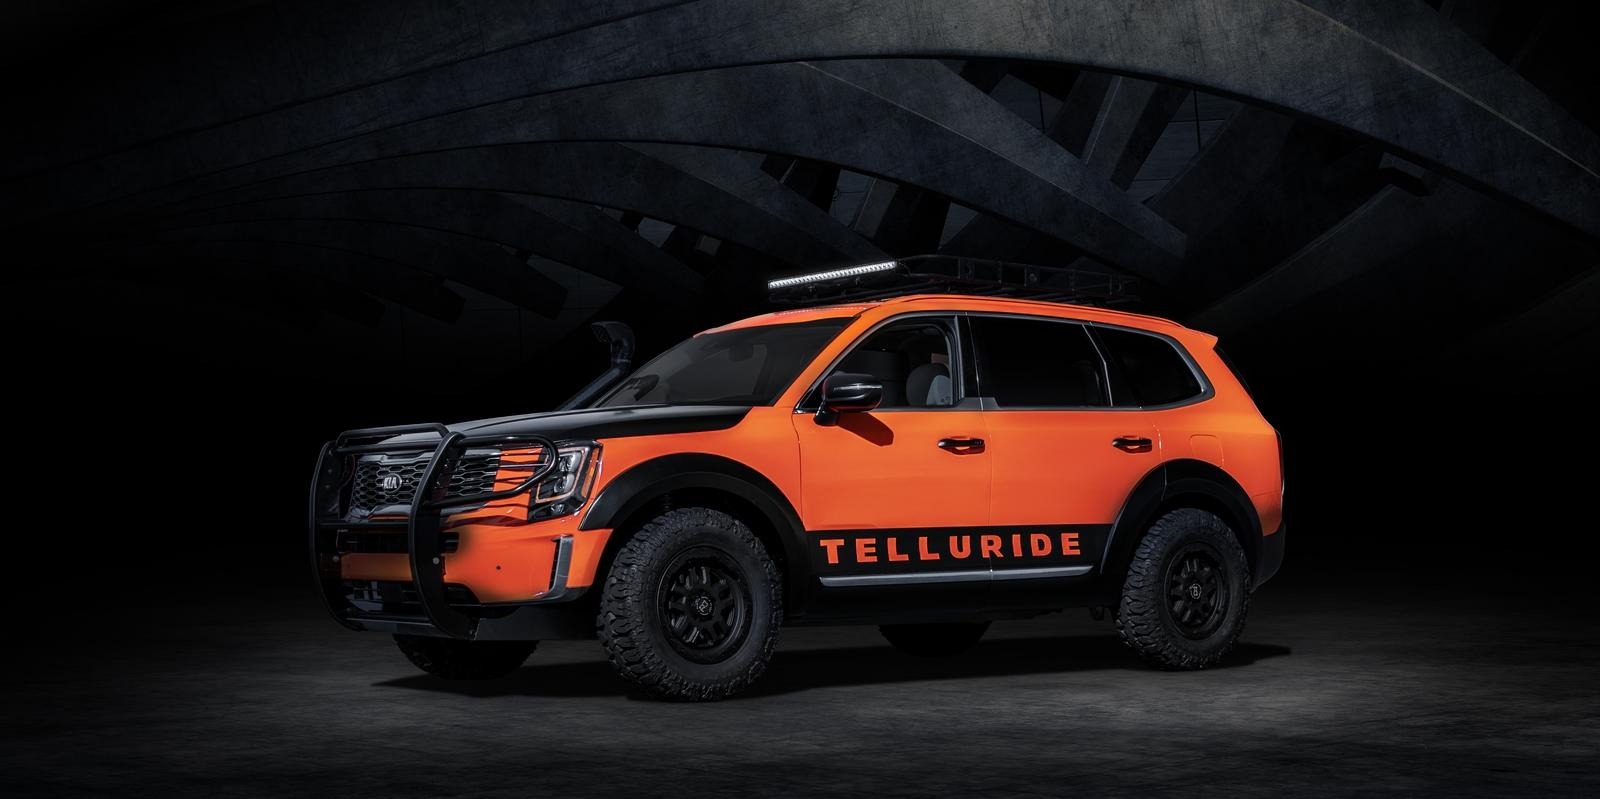 Honda Pilot Accessories >> Kia Could Leverage The 2020 Telluride With SEMA-Inspired Accessories But It Could Go A Step ...